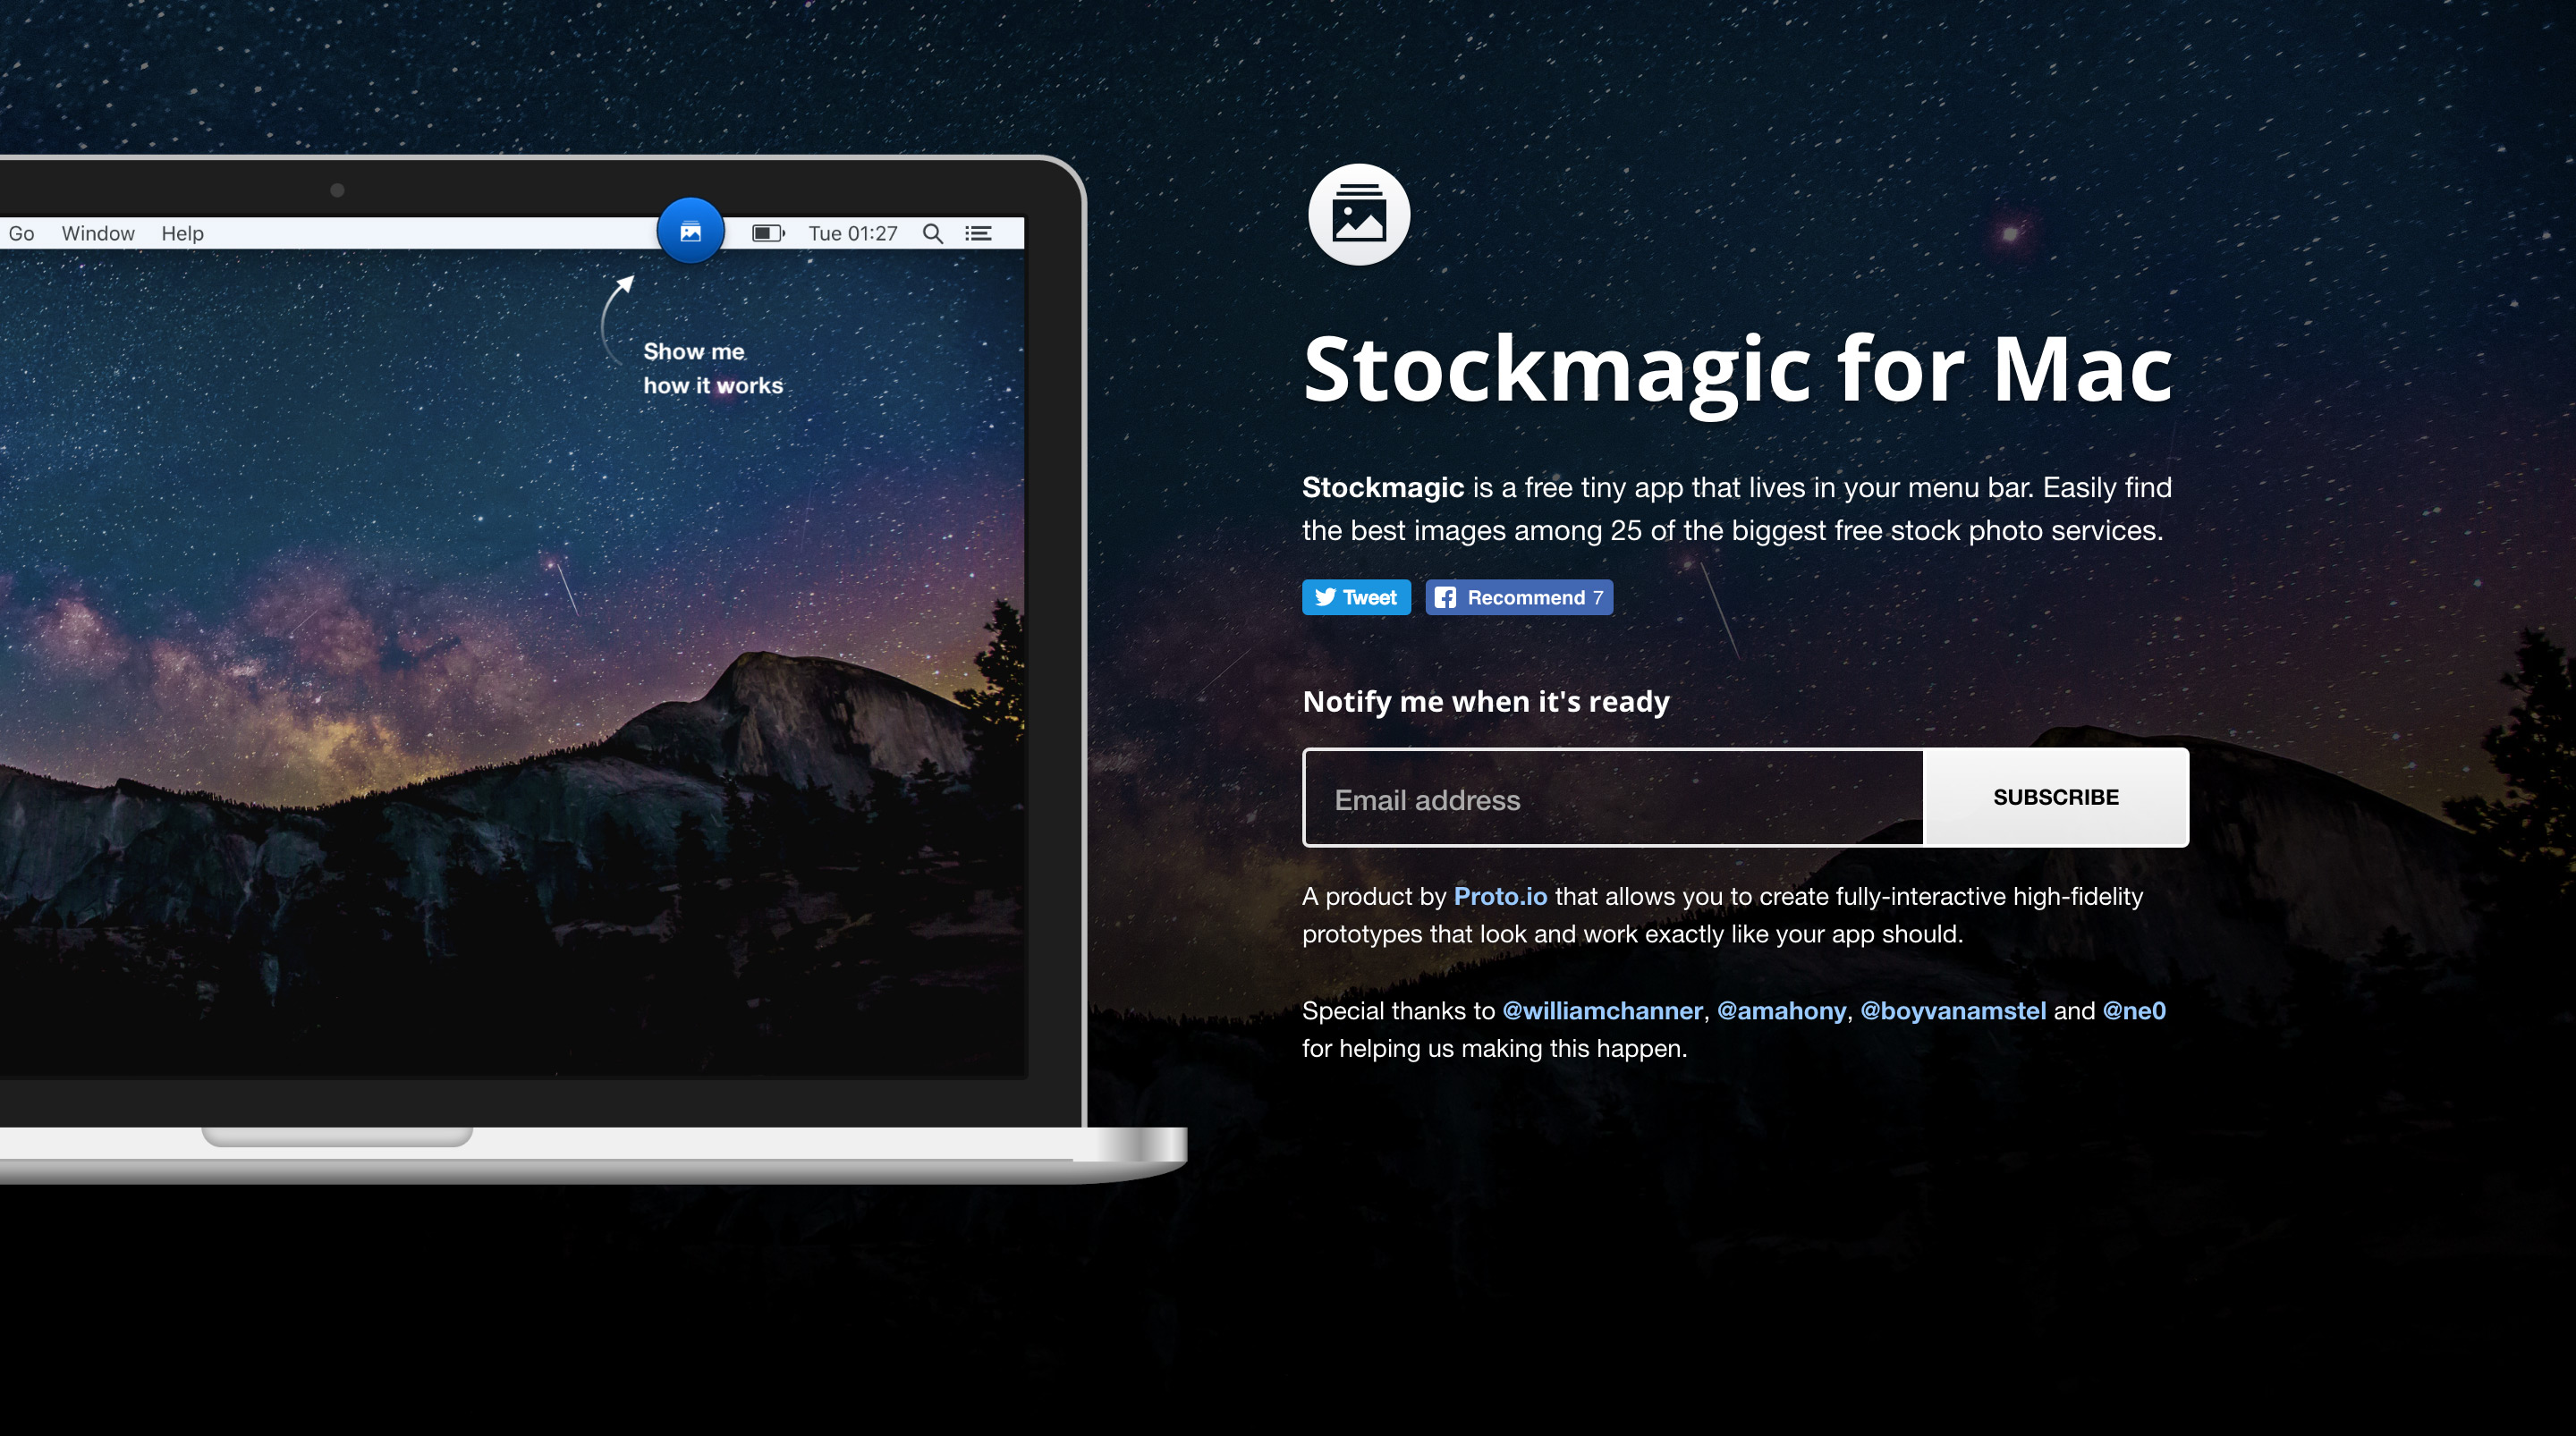 Stockmagic for Mac Website Screenshot